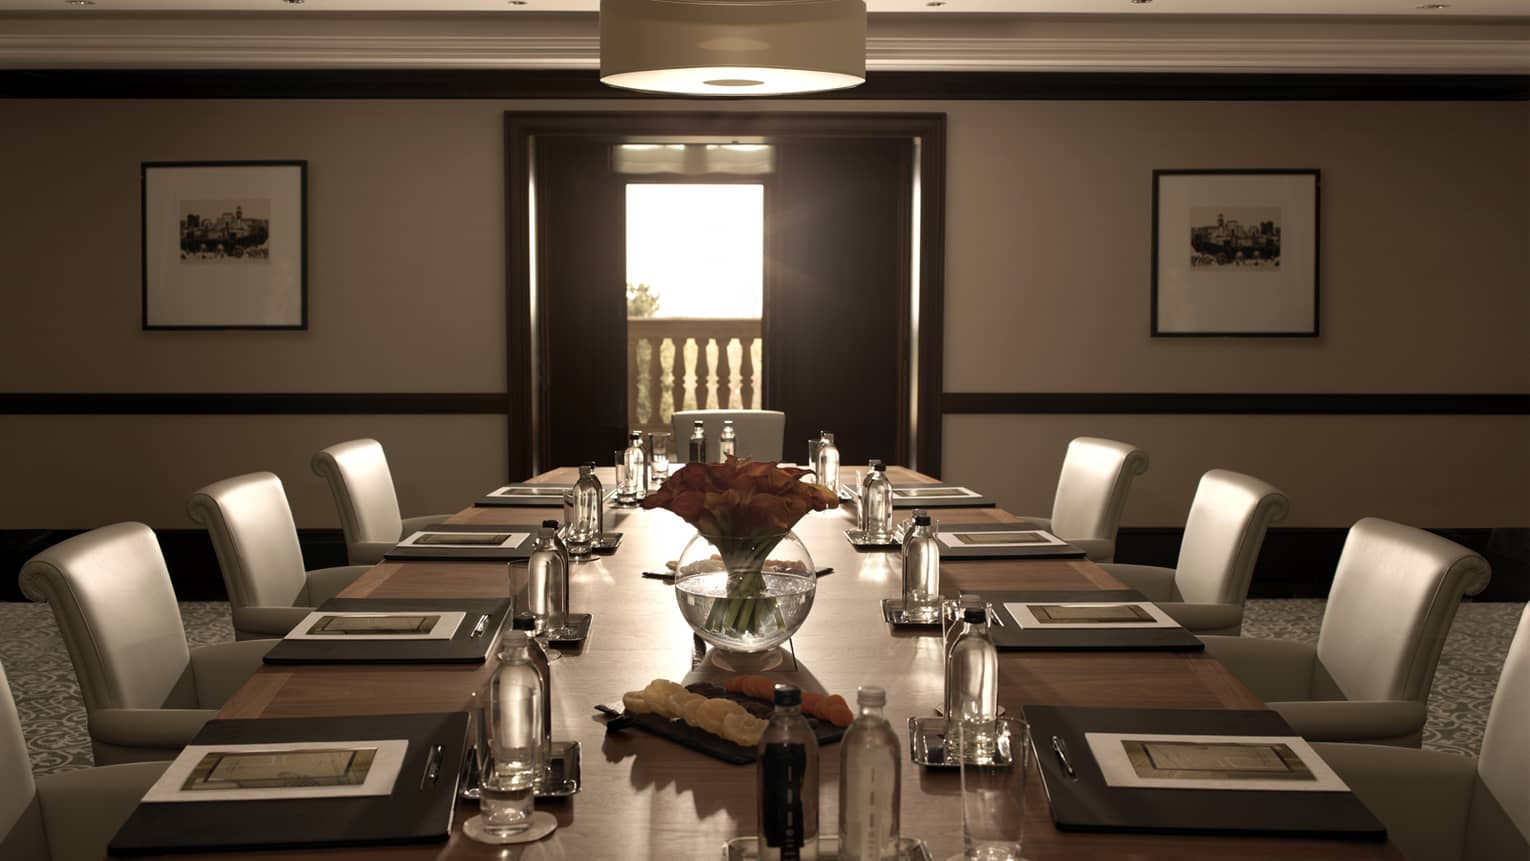 Sleek leather chairs around large, dark wood boardroom table set for business event in Humayun Meeting Room